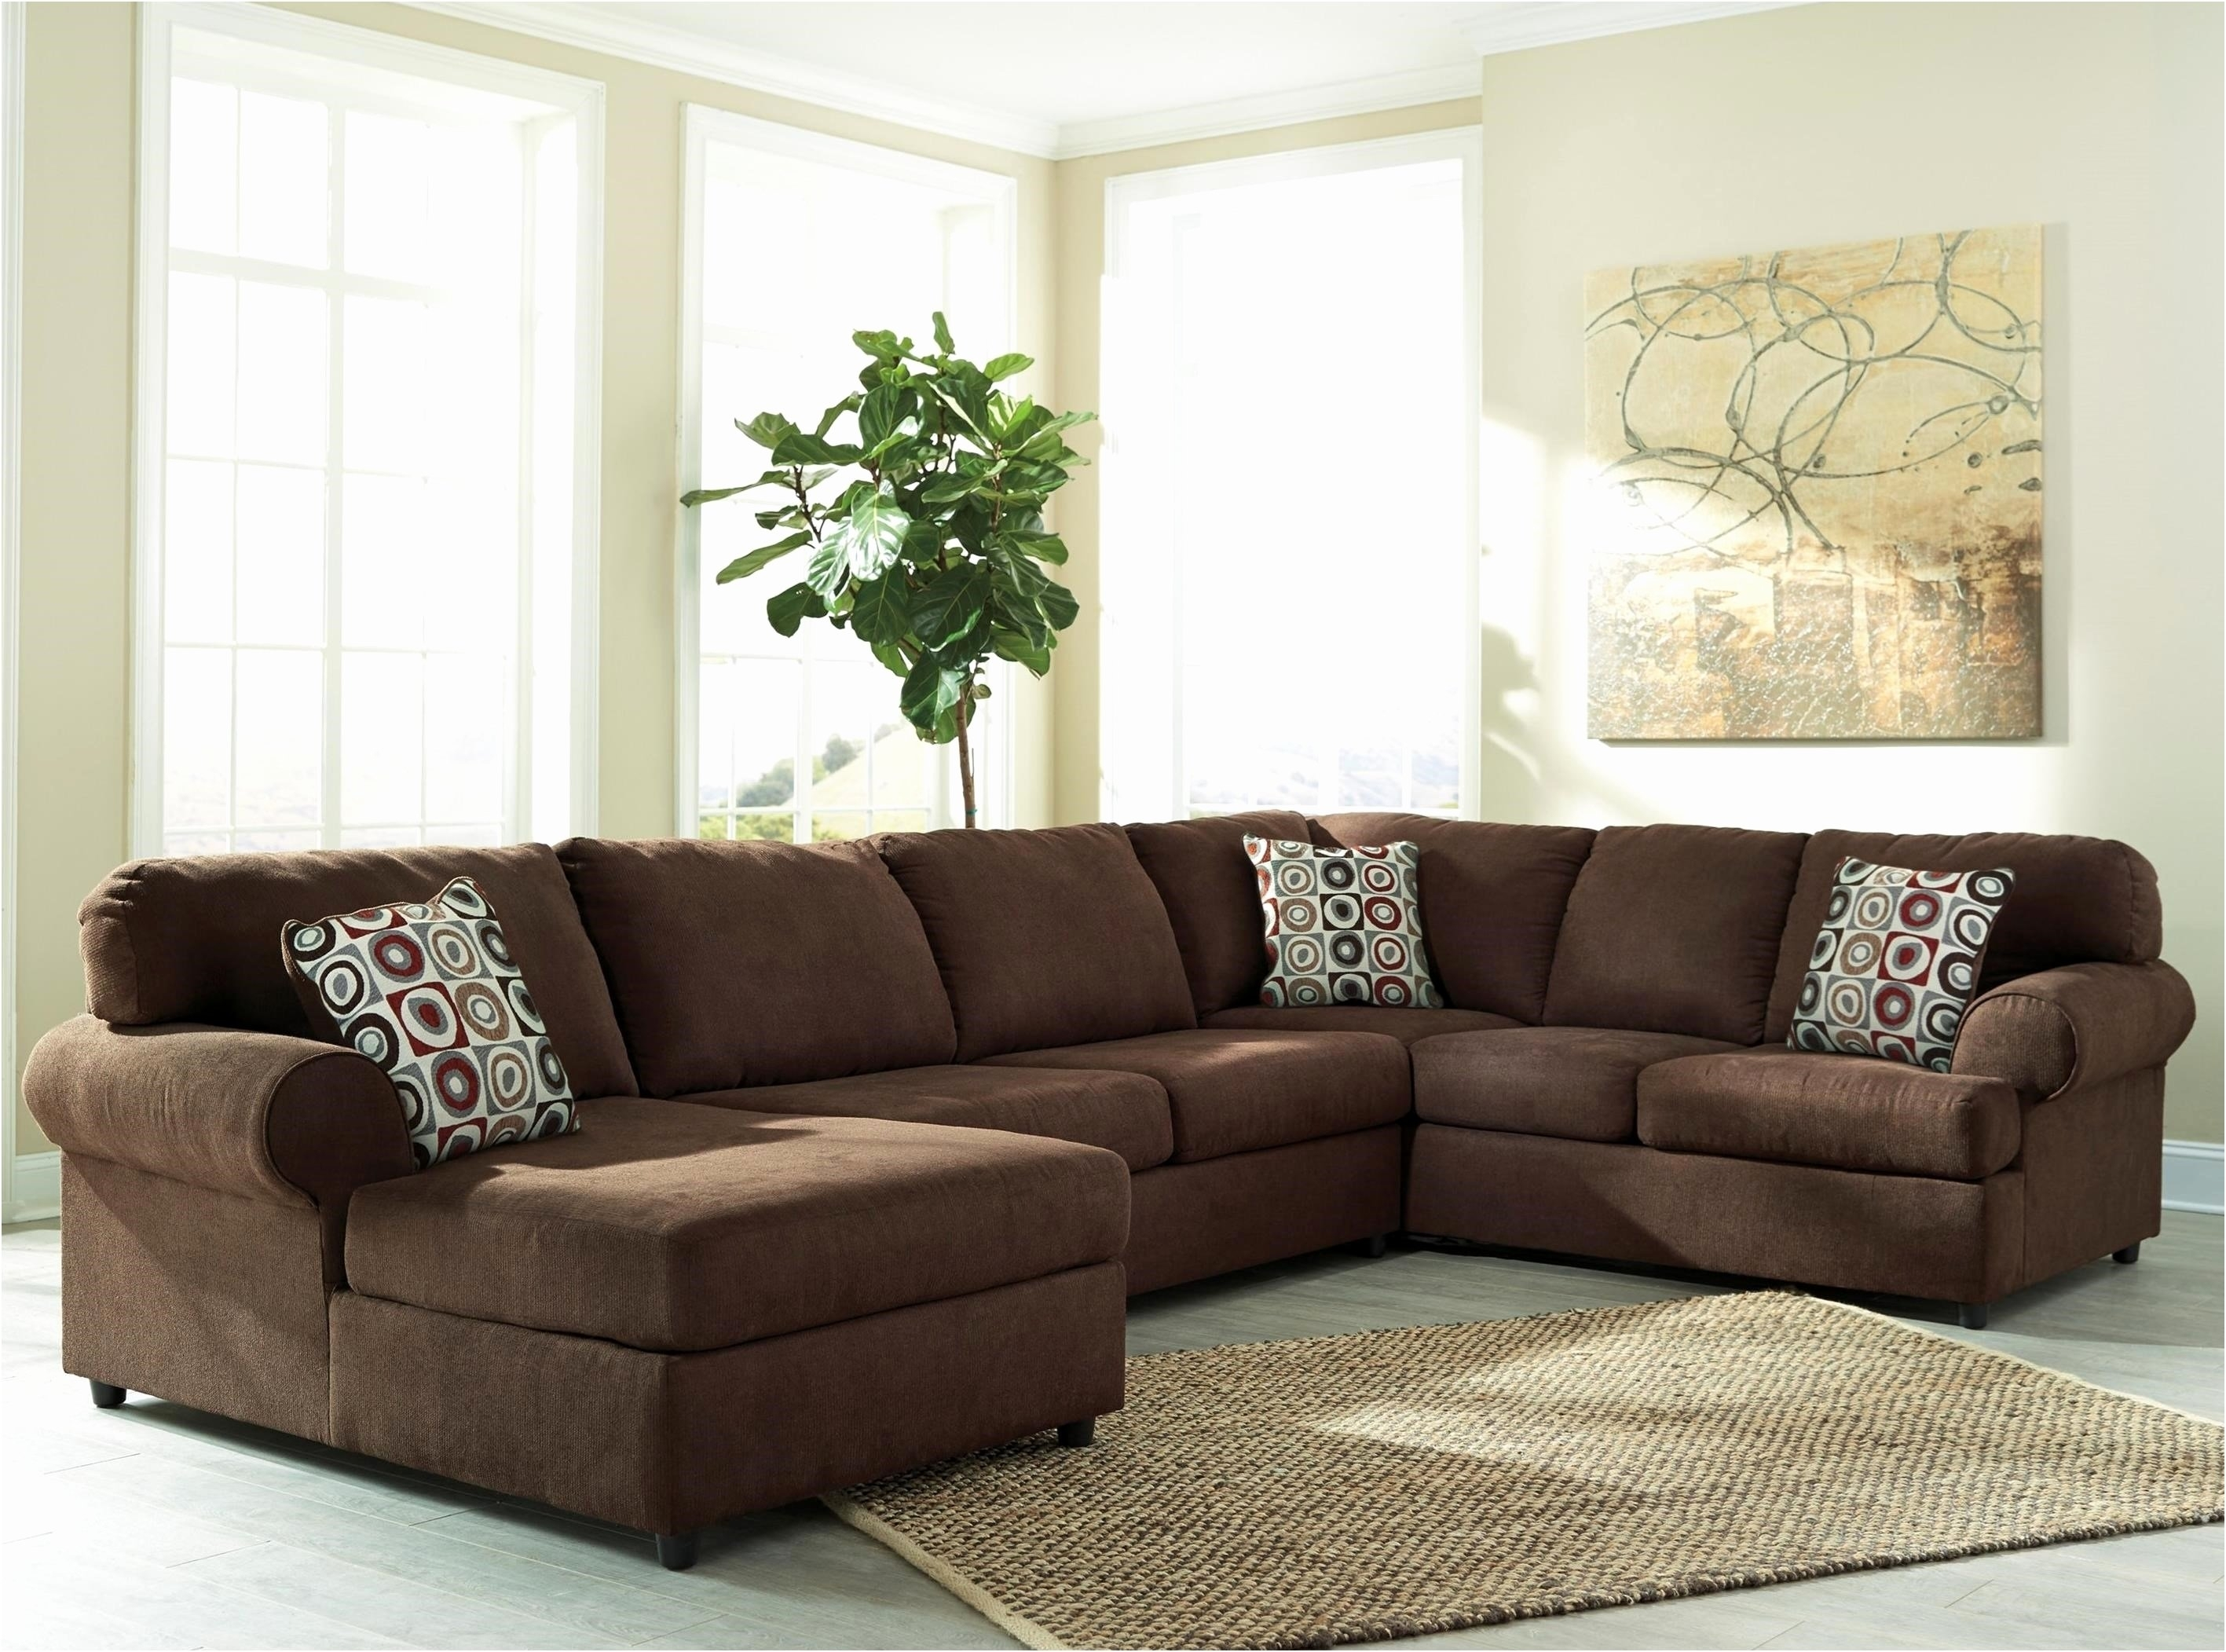 Havertys Furniture Sectionals Inspiration Probably Super Real Throughout Arrowmask 2 Piece Sectionals With Sleeper & Left Facing Chaise (Image 9 of 25)